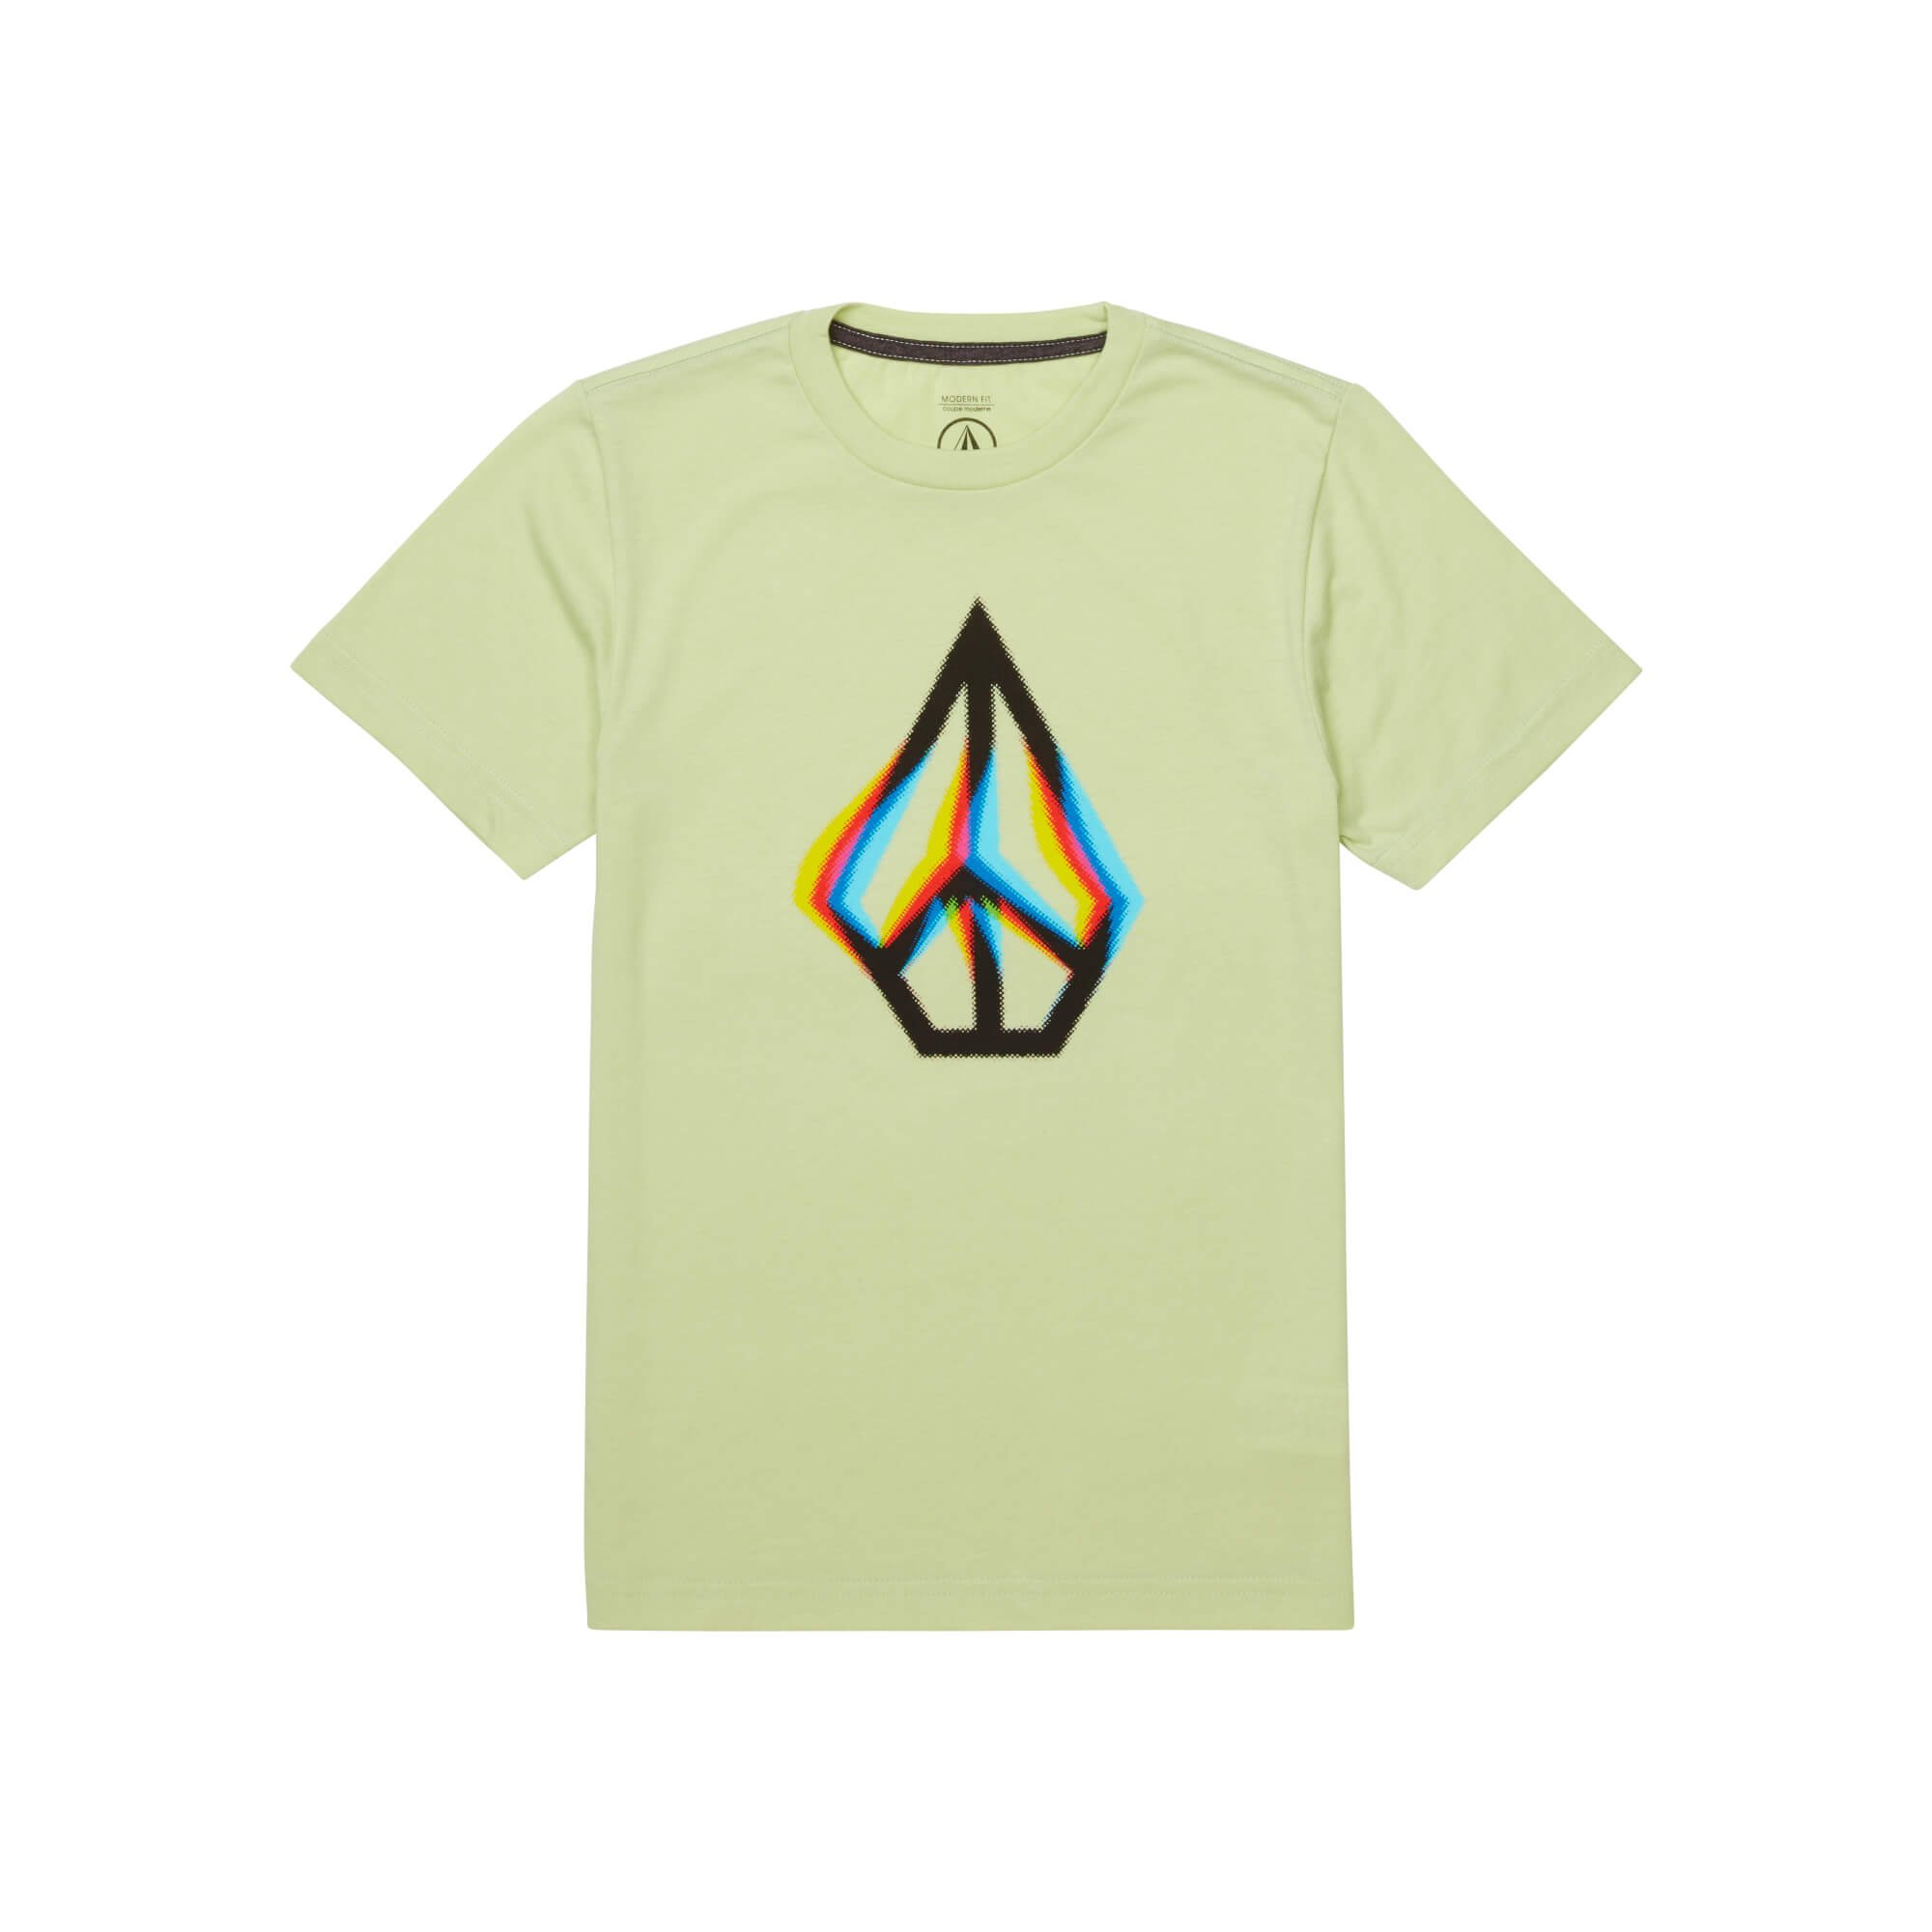 Volcom Big Boys' Peace Blur Short Sleeve Tee, Mist Green, S